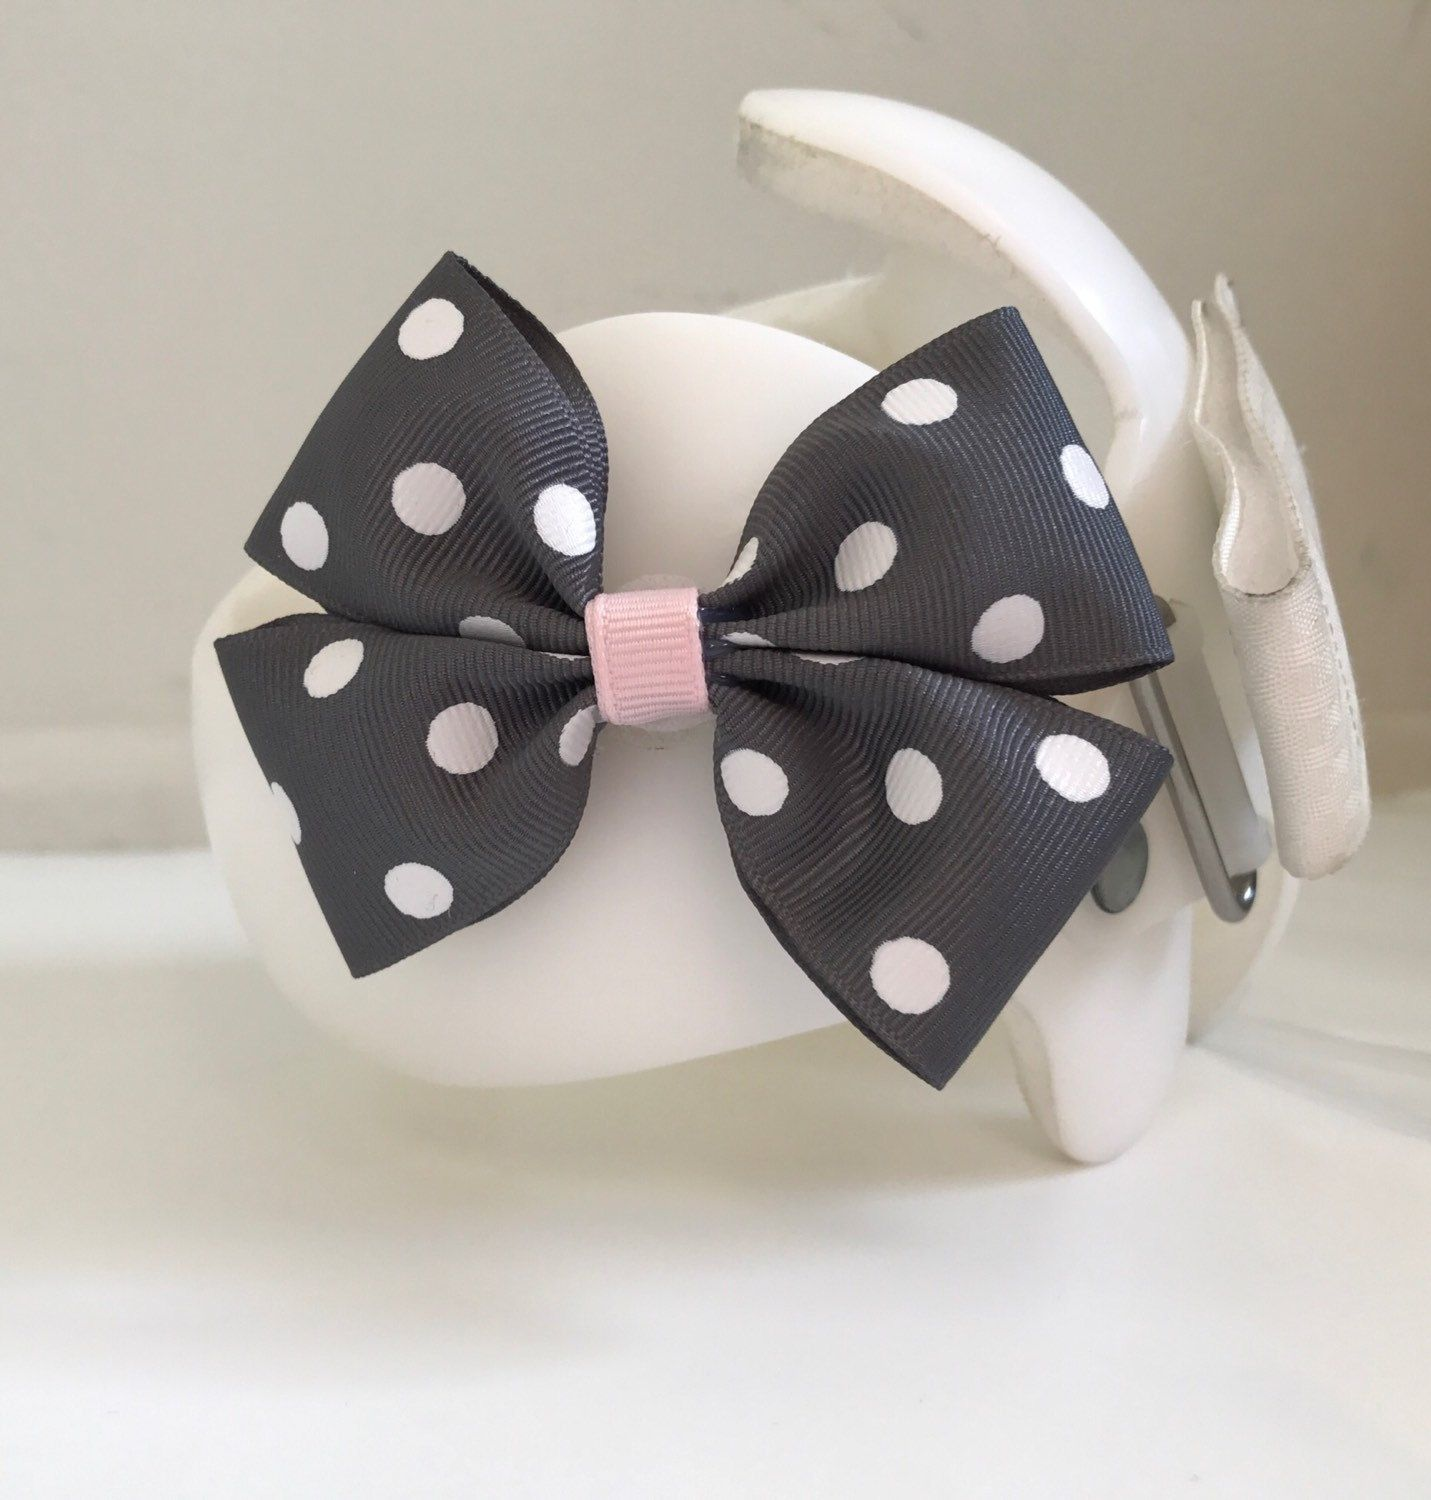 Cranial Helmet Grey Polka Dot and Light Pink Bow, Grey and Pink Cranial Band Bow by SunshineandBling on Etsy